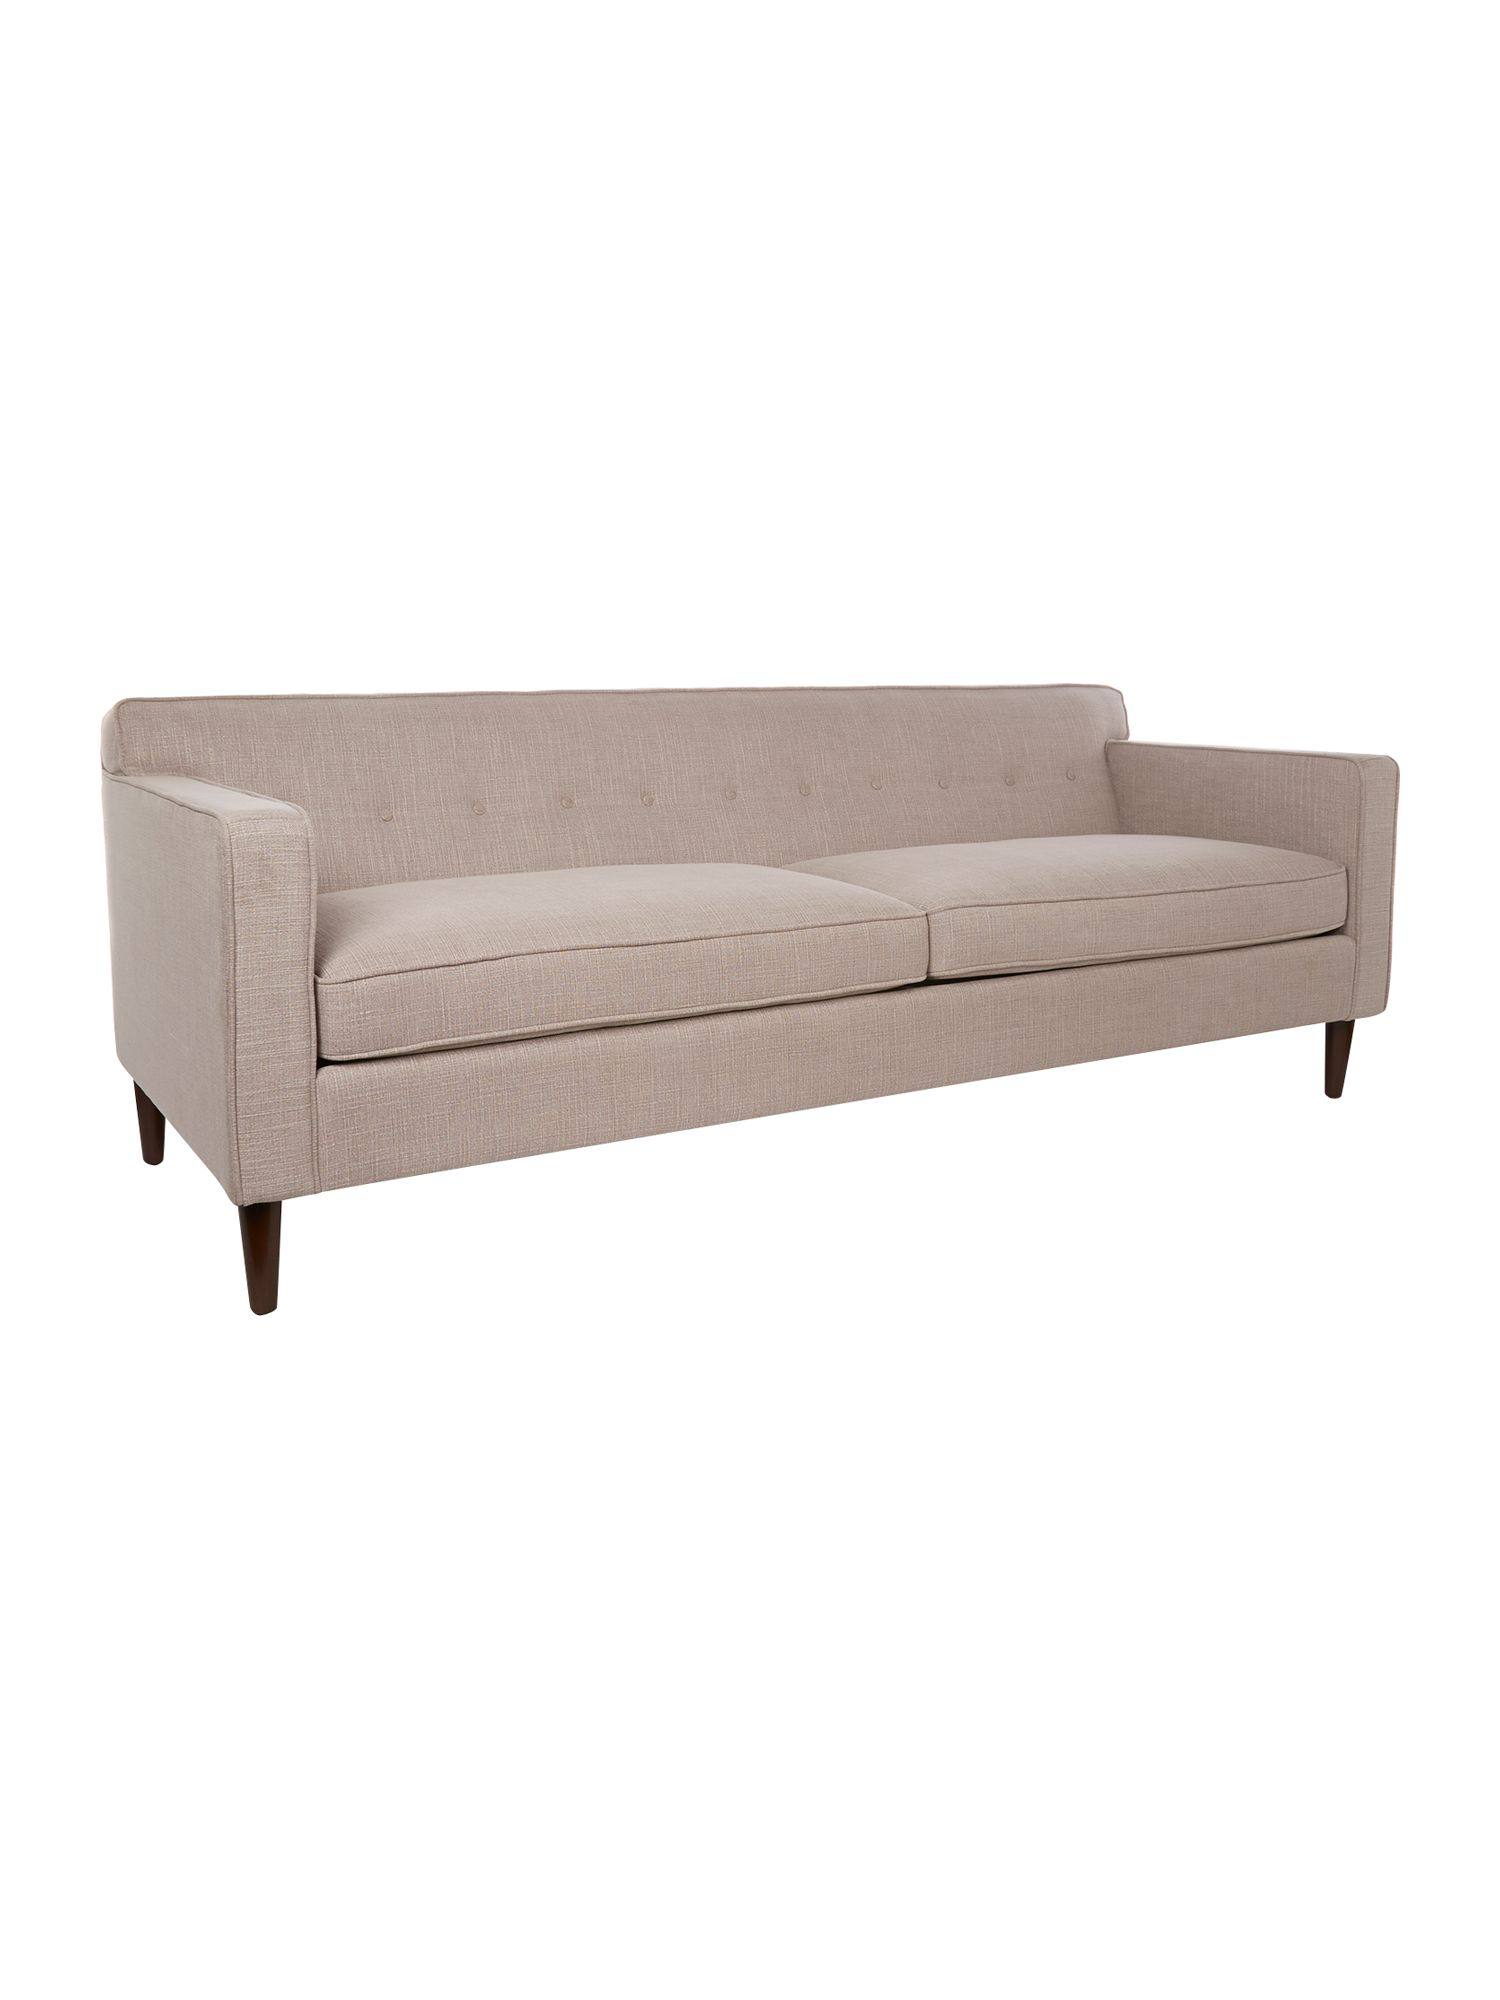 Aurelia rose 3 seater sofa